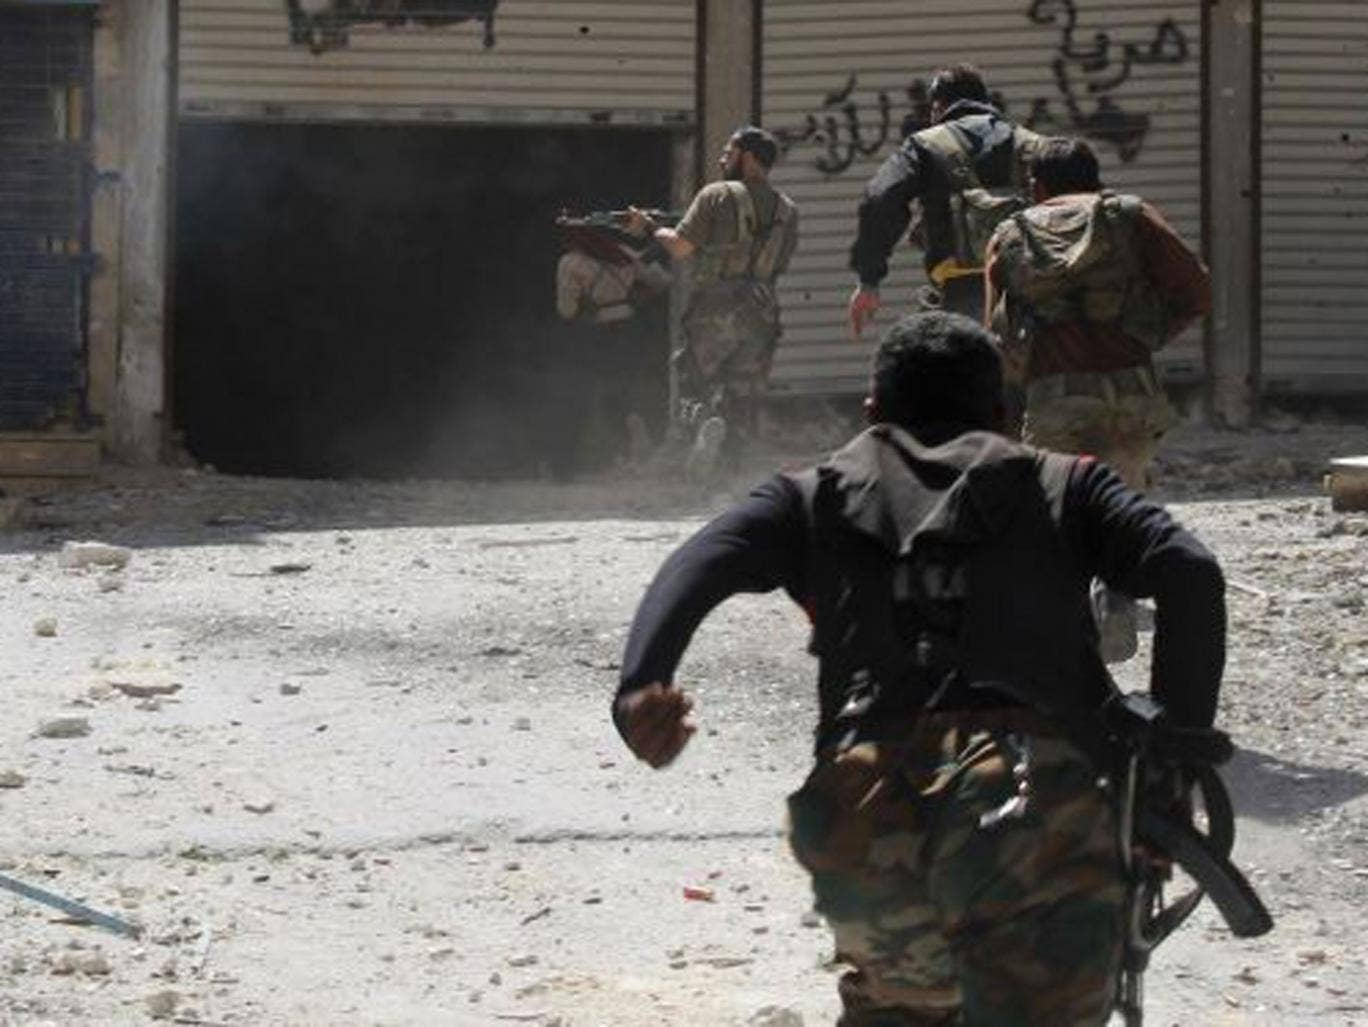 Members of the rebellious Free Syrian Army, who have been fighting in the country's civil war for over two years